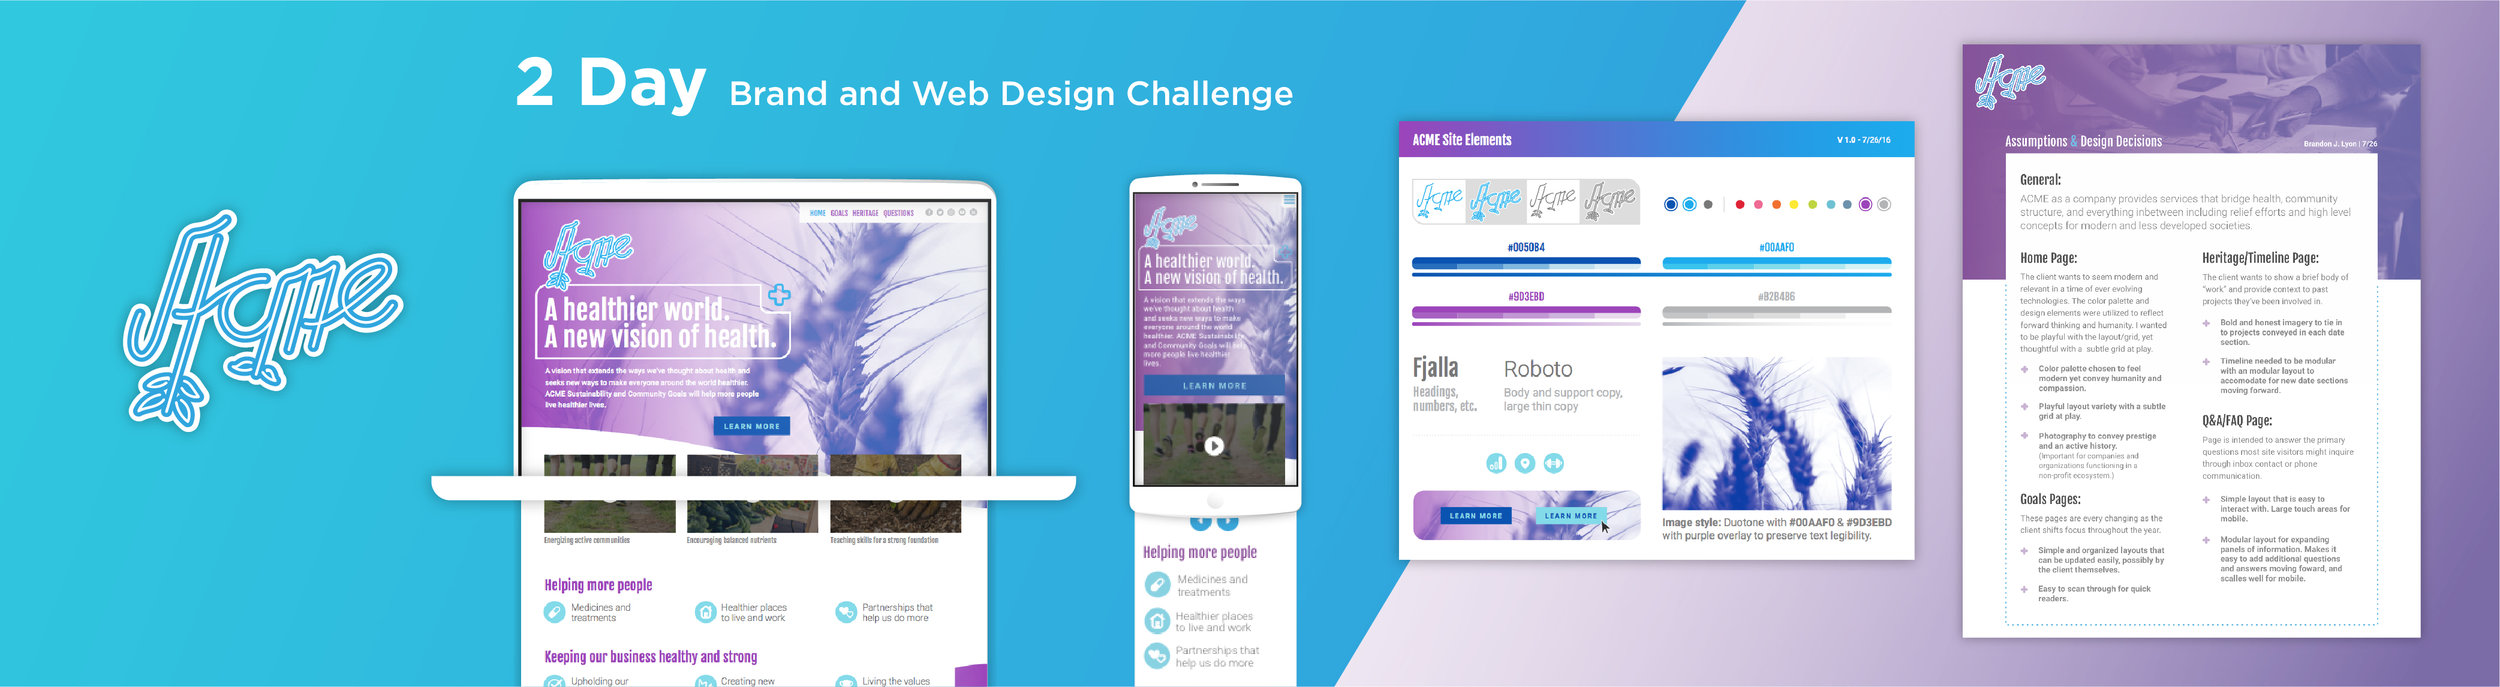 Acme_ChallengePreview-08.jpg